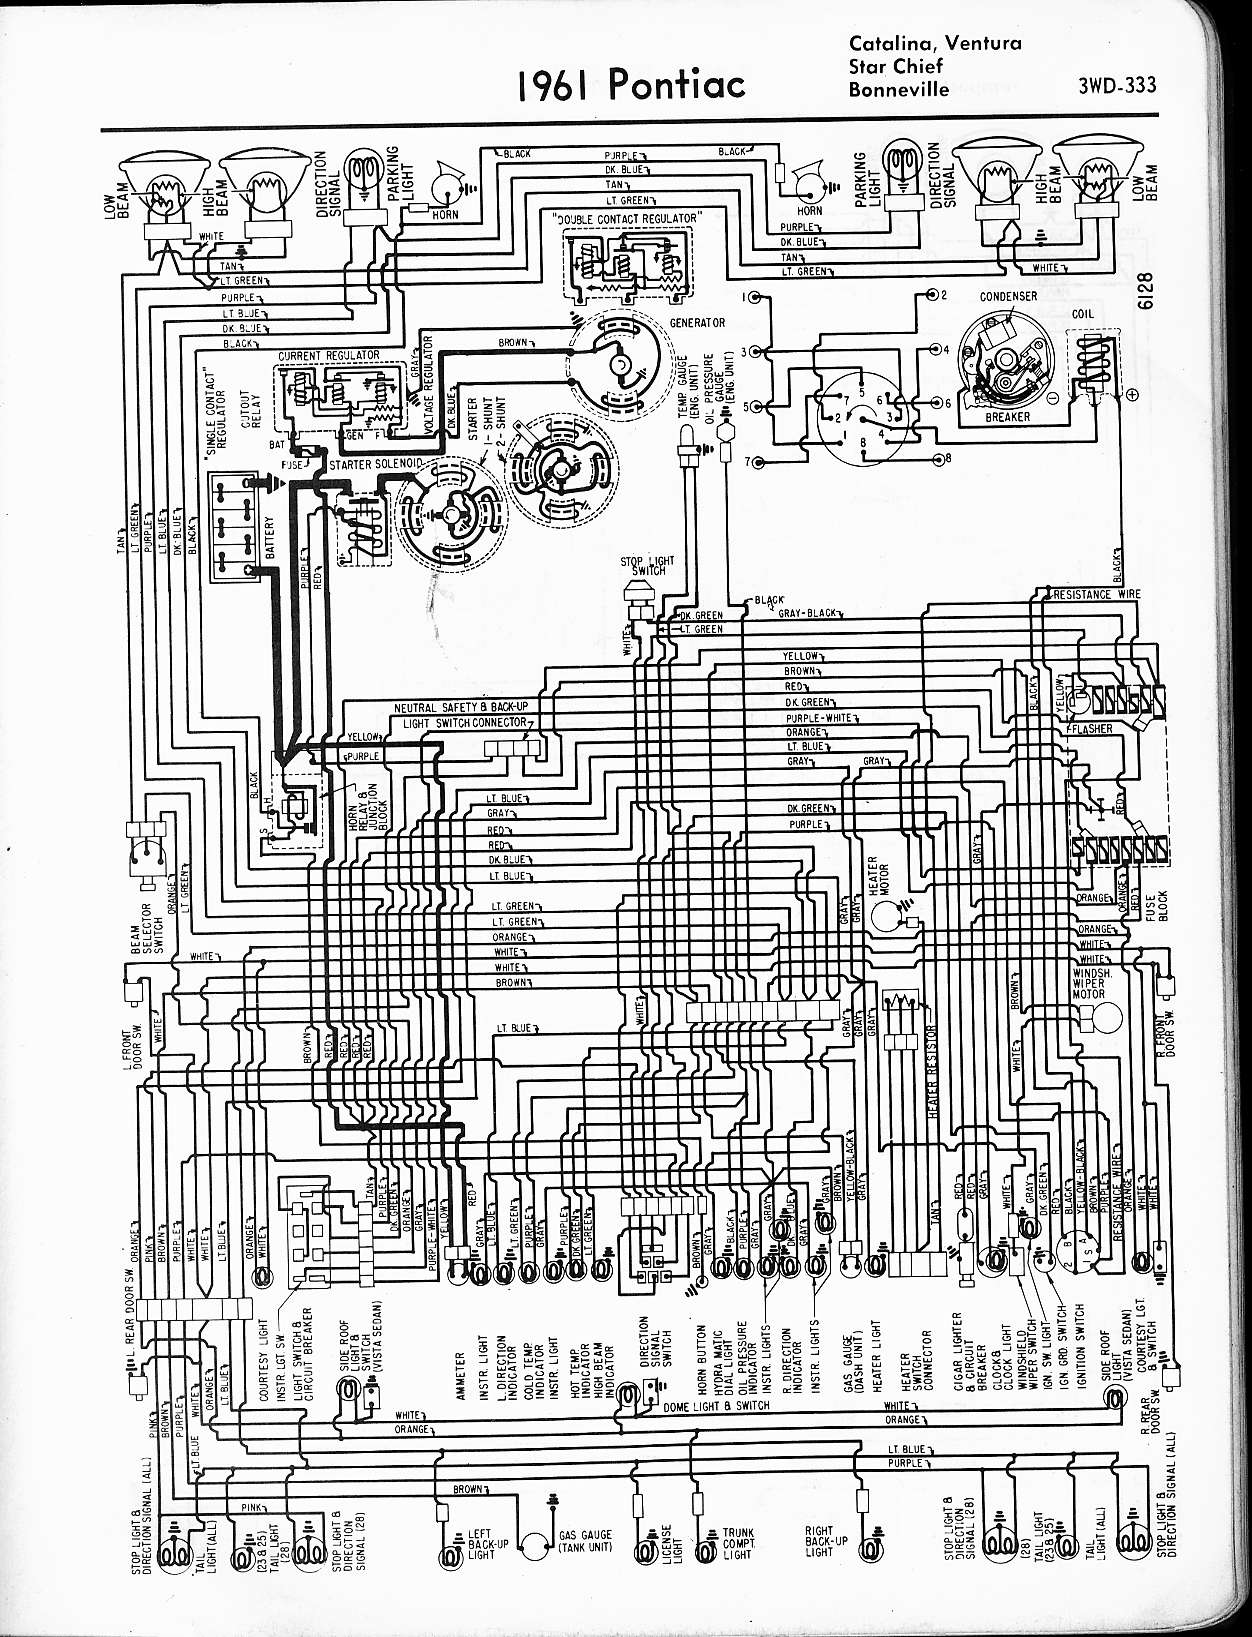 1 Wire Alternator Wiring Diagram Pontiac G6 | Wiring Liry Motherboard Wiring Diagram Pontiac Vibe on